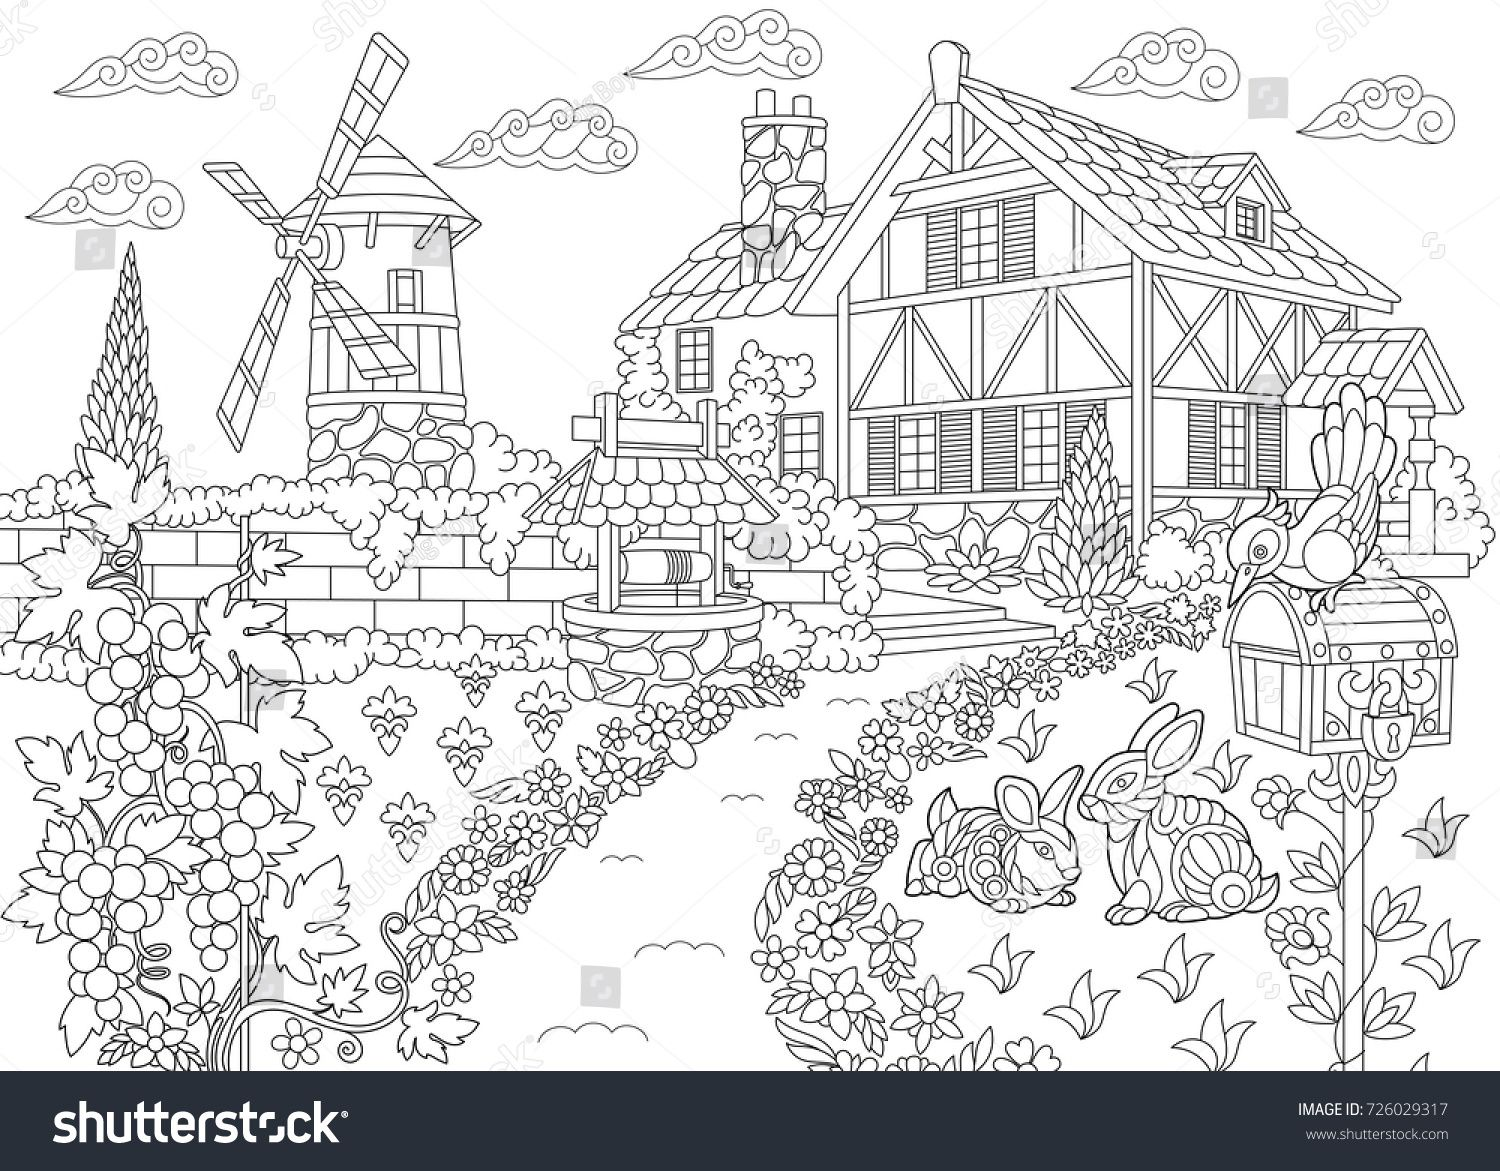 Coloring Page Of Rural Landscape Farm House Windmill Water Well